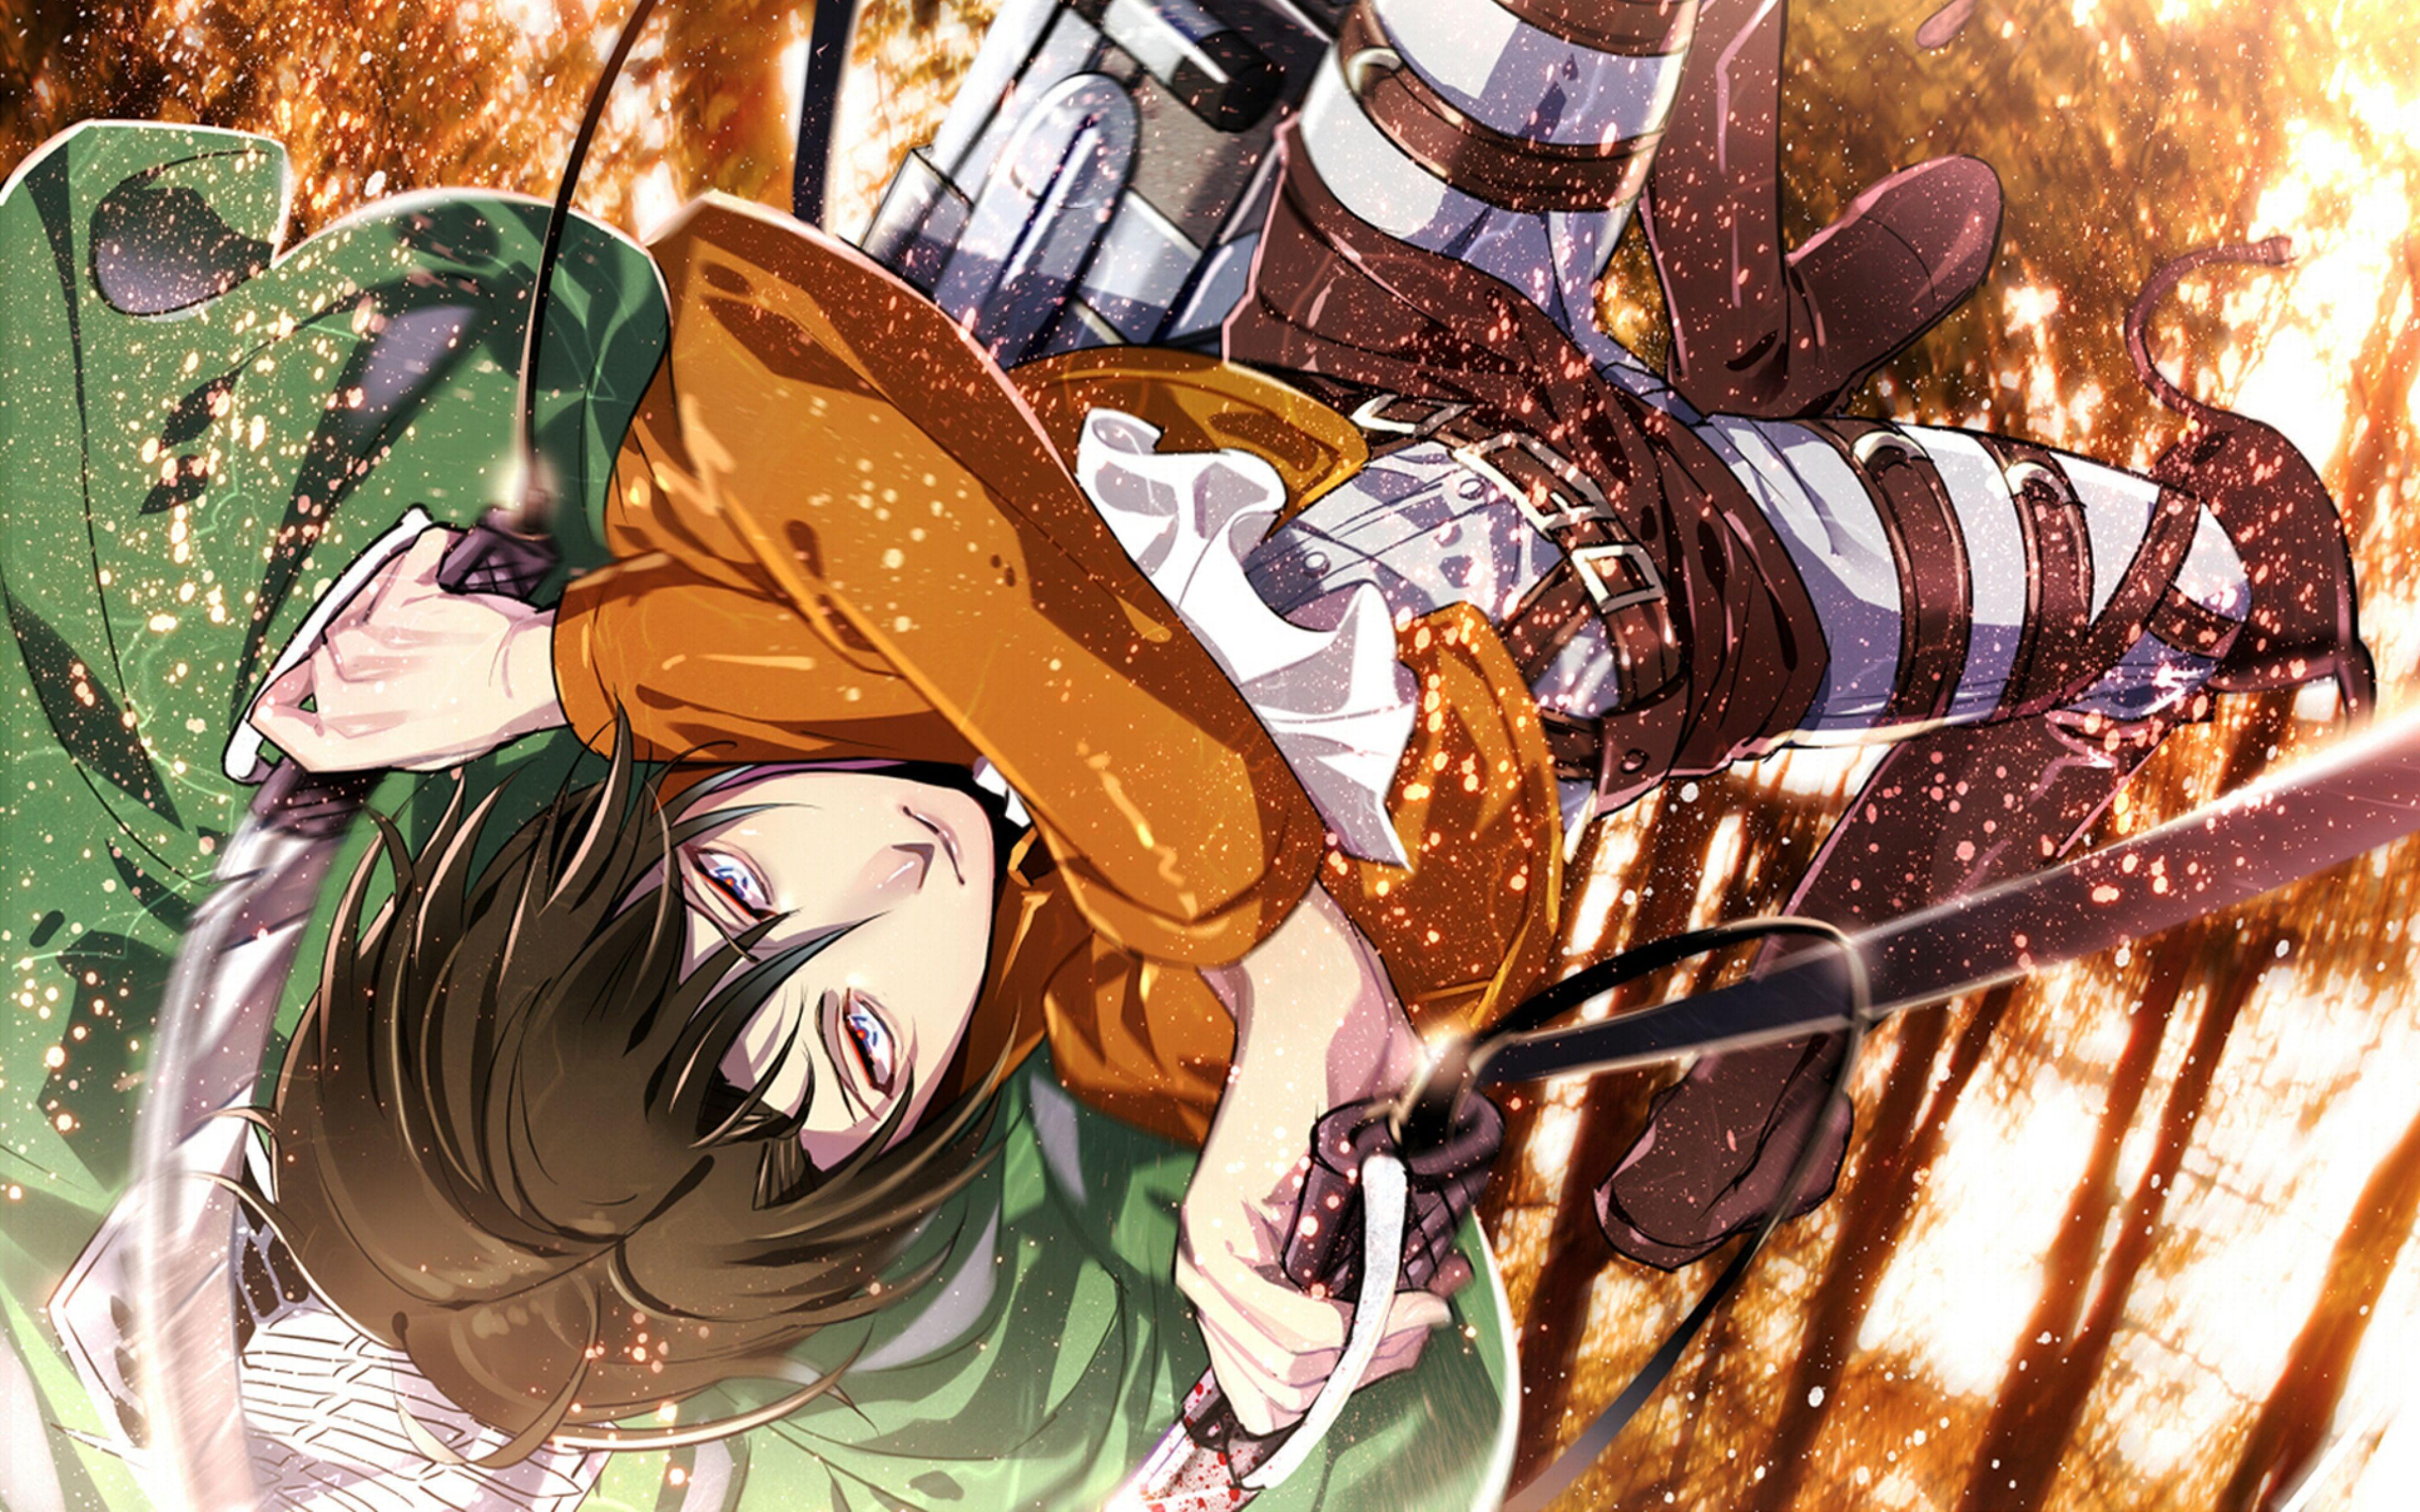 After the titanic sunk in 1912, it remained lost at the bottom of the atlantic ocean for 73 years. Attack On Titan Anime 4k PC Wallpapers - Wallpaper Cave